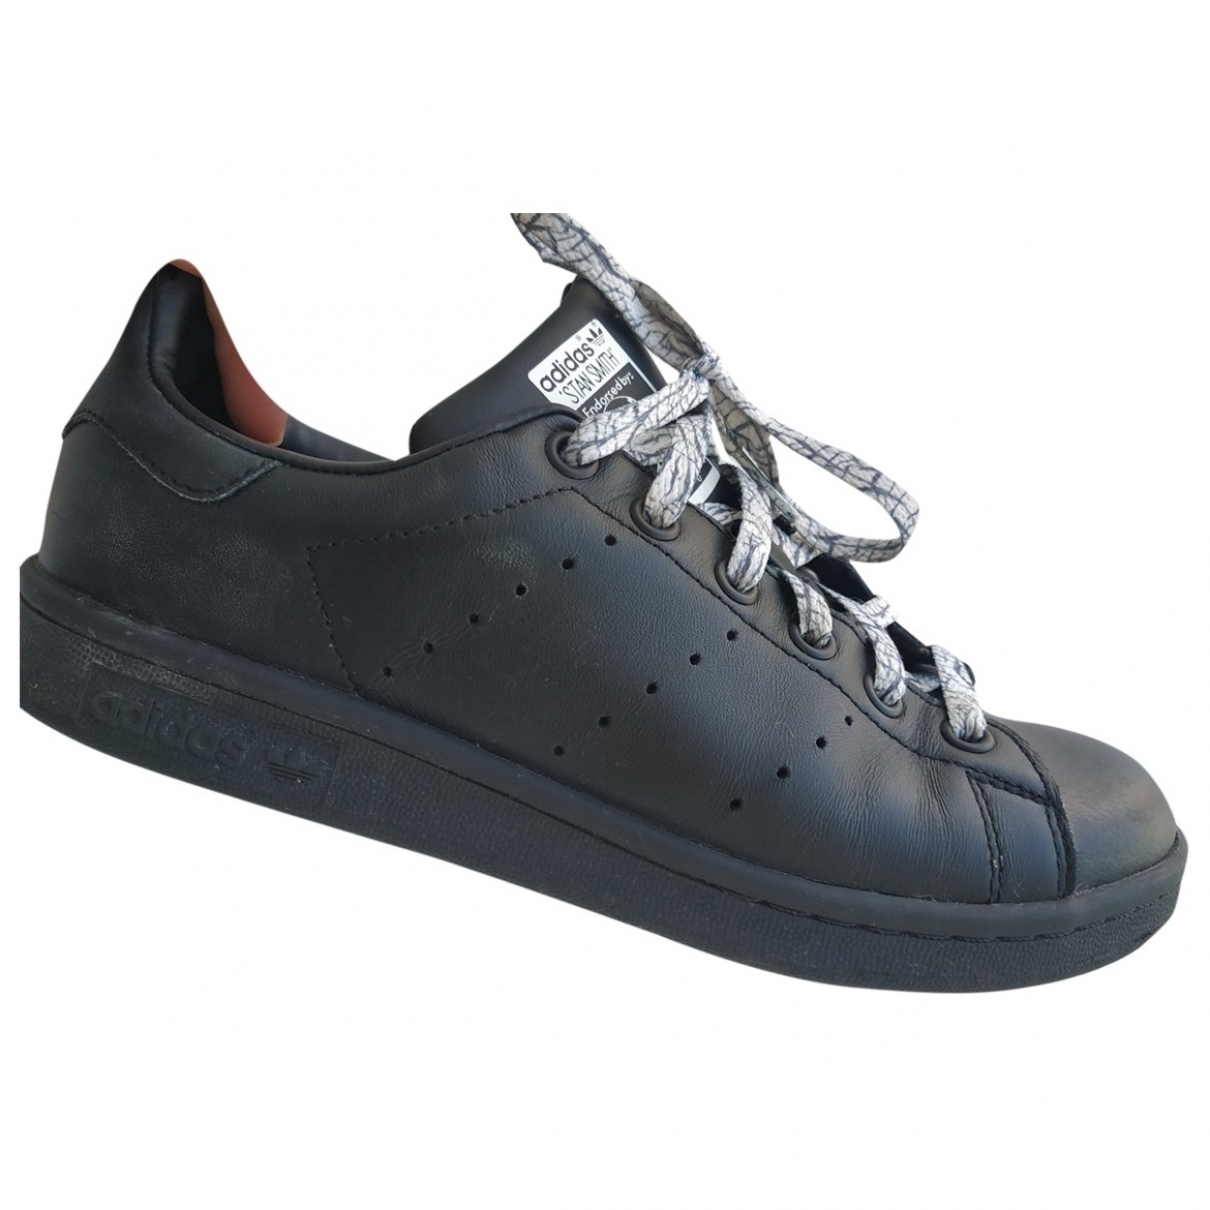 Adidas Stan Smith Black Leather Trainers for Women 37.5 EU